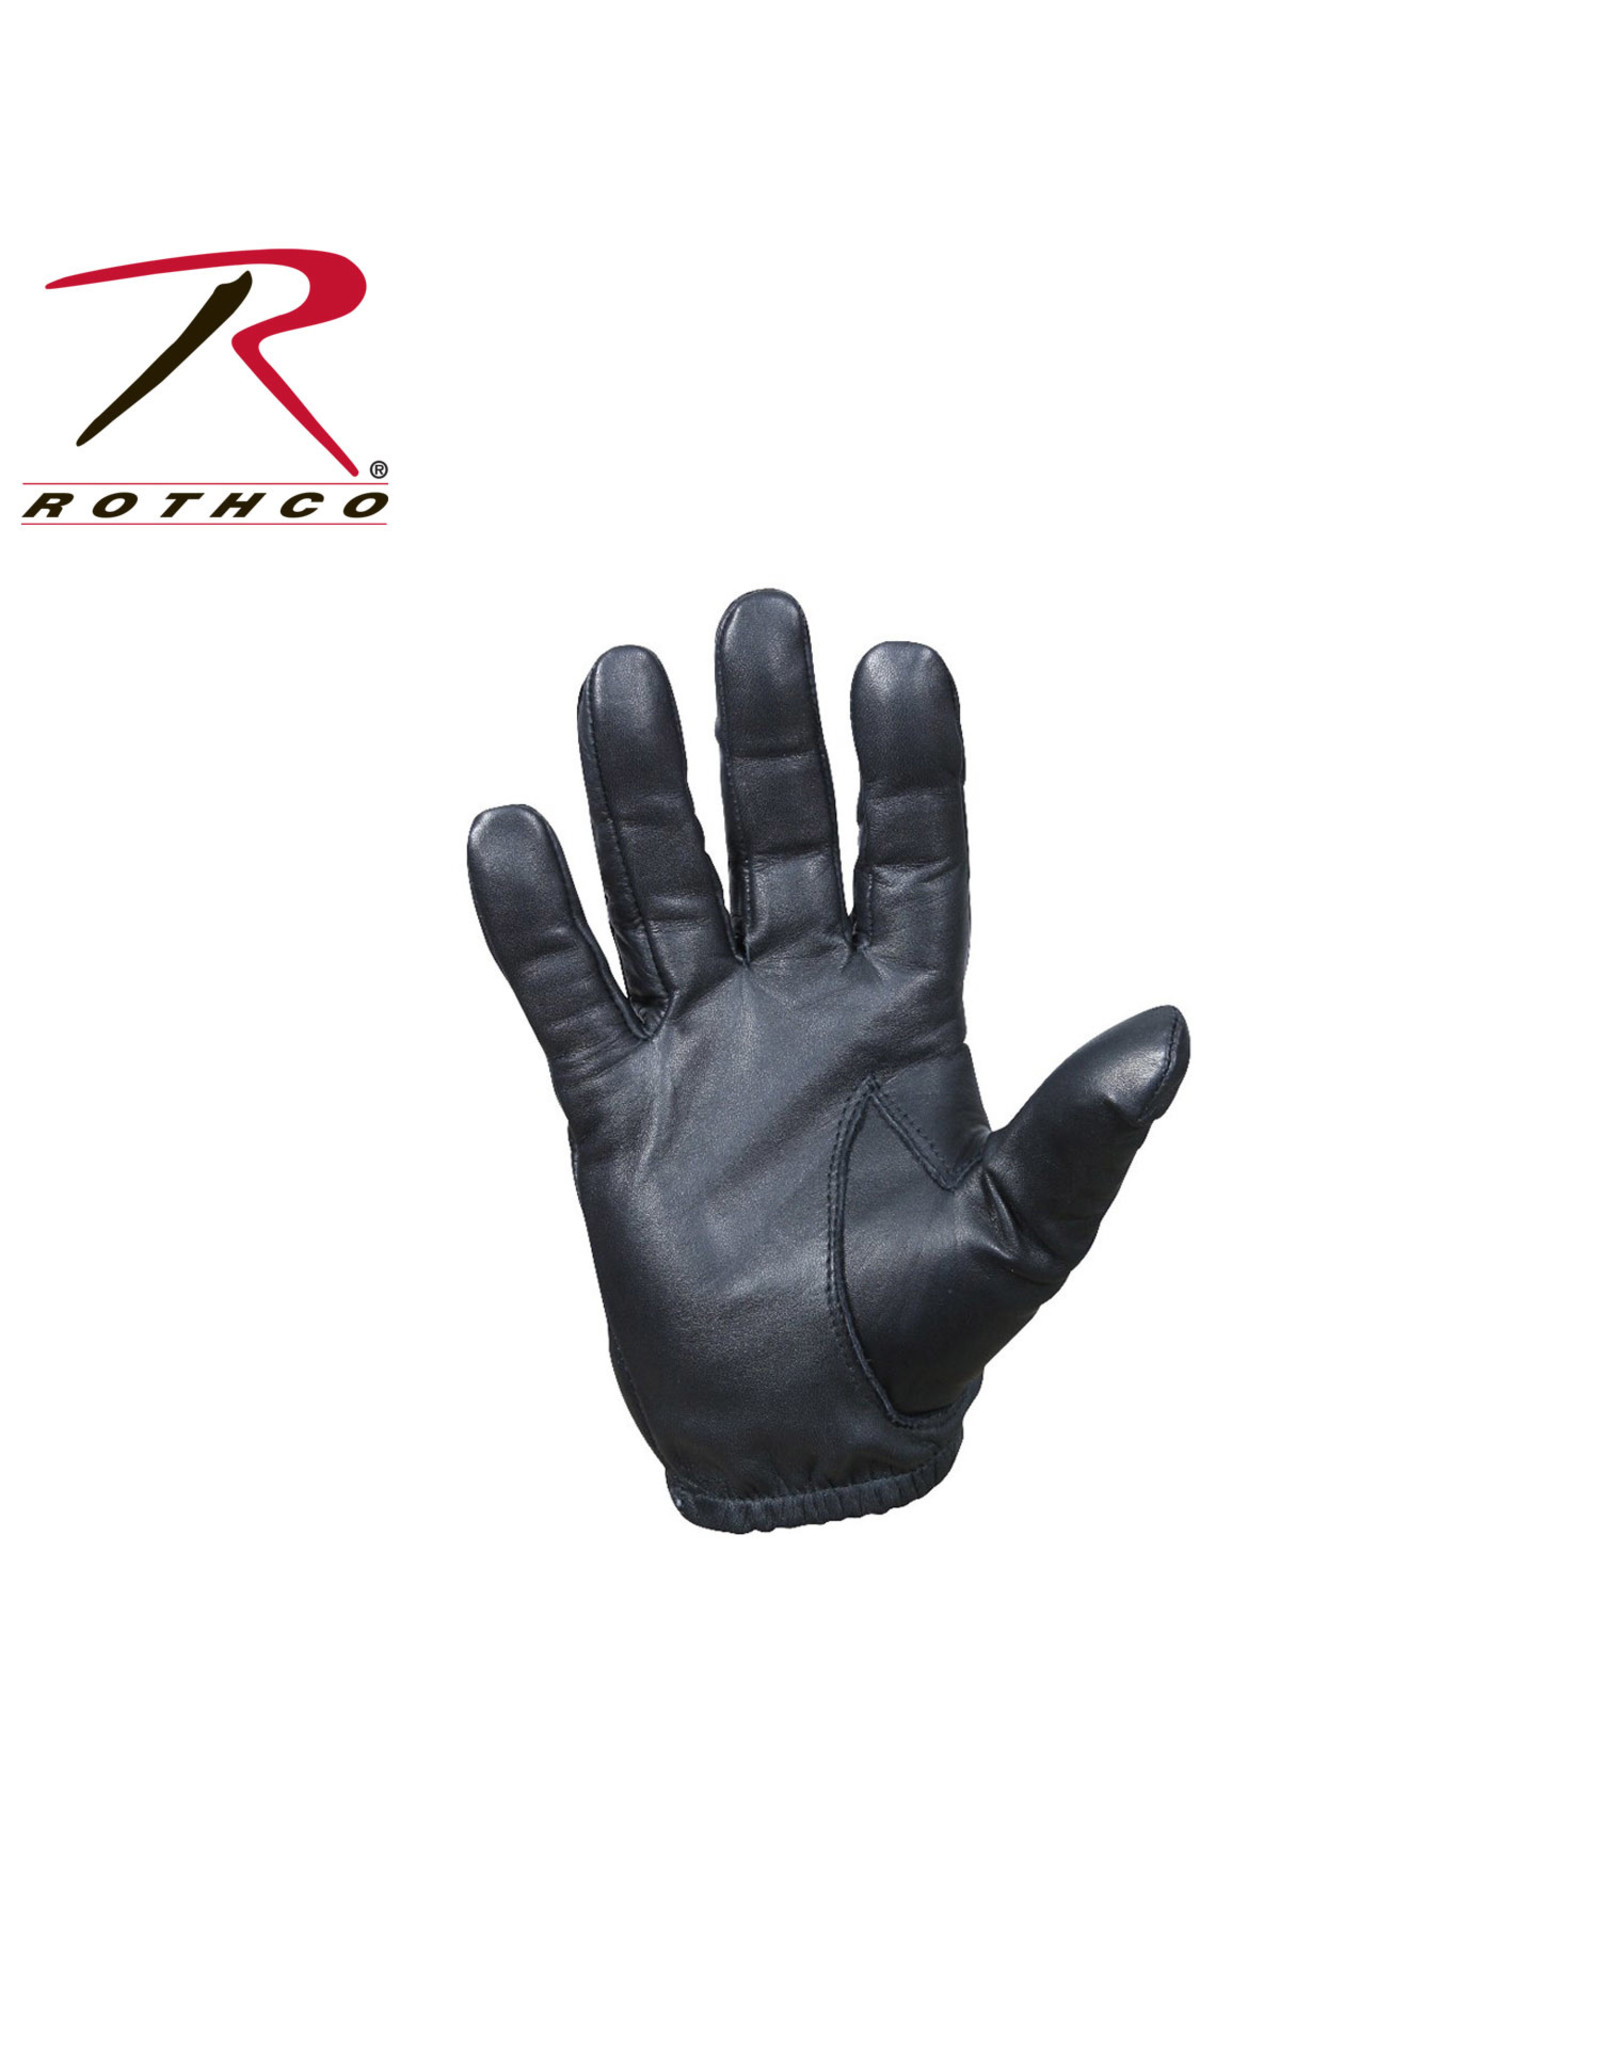 Police Search Glove